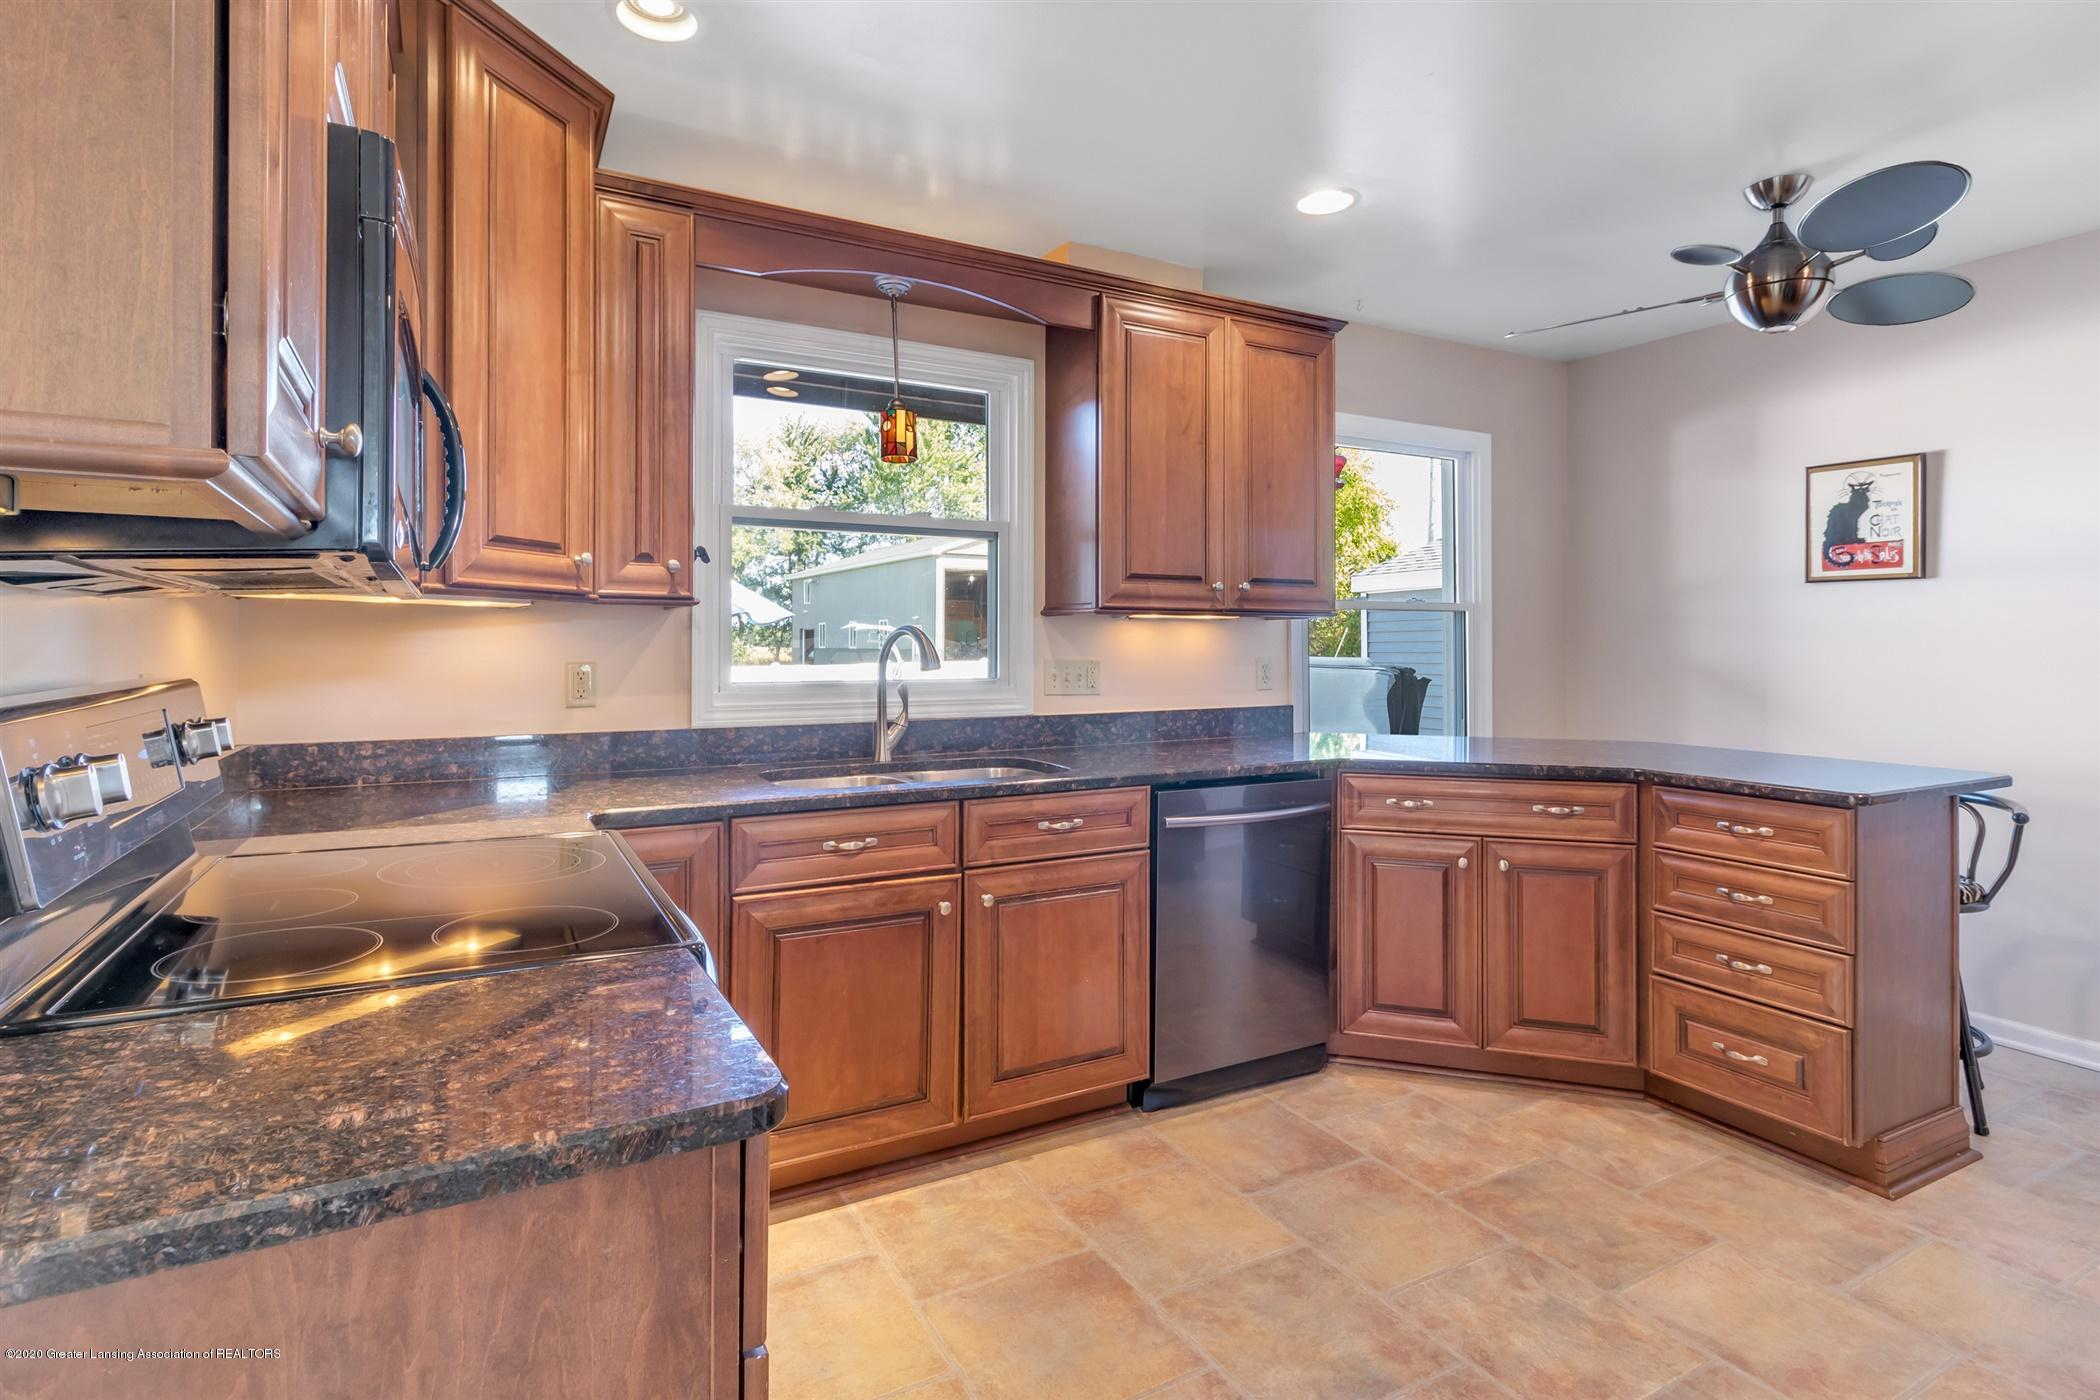 7346 W Cutler Rd - PADDLE FANS AND BEAUTIFUL CABINETRY - 12